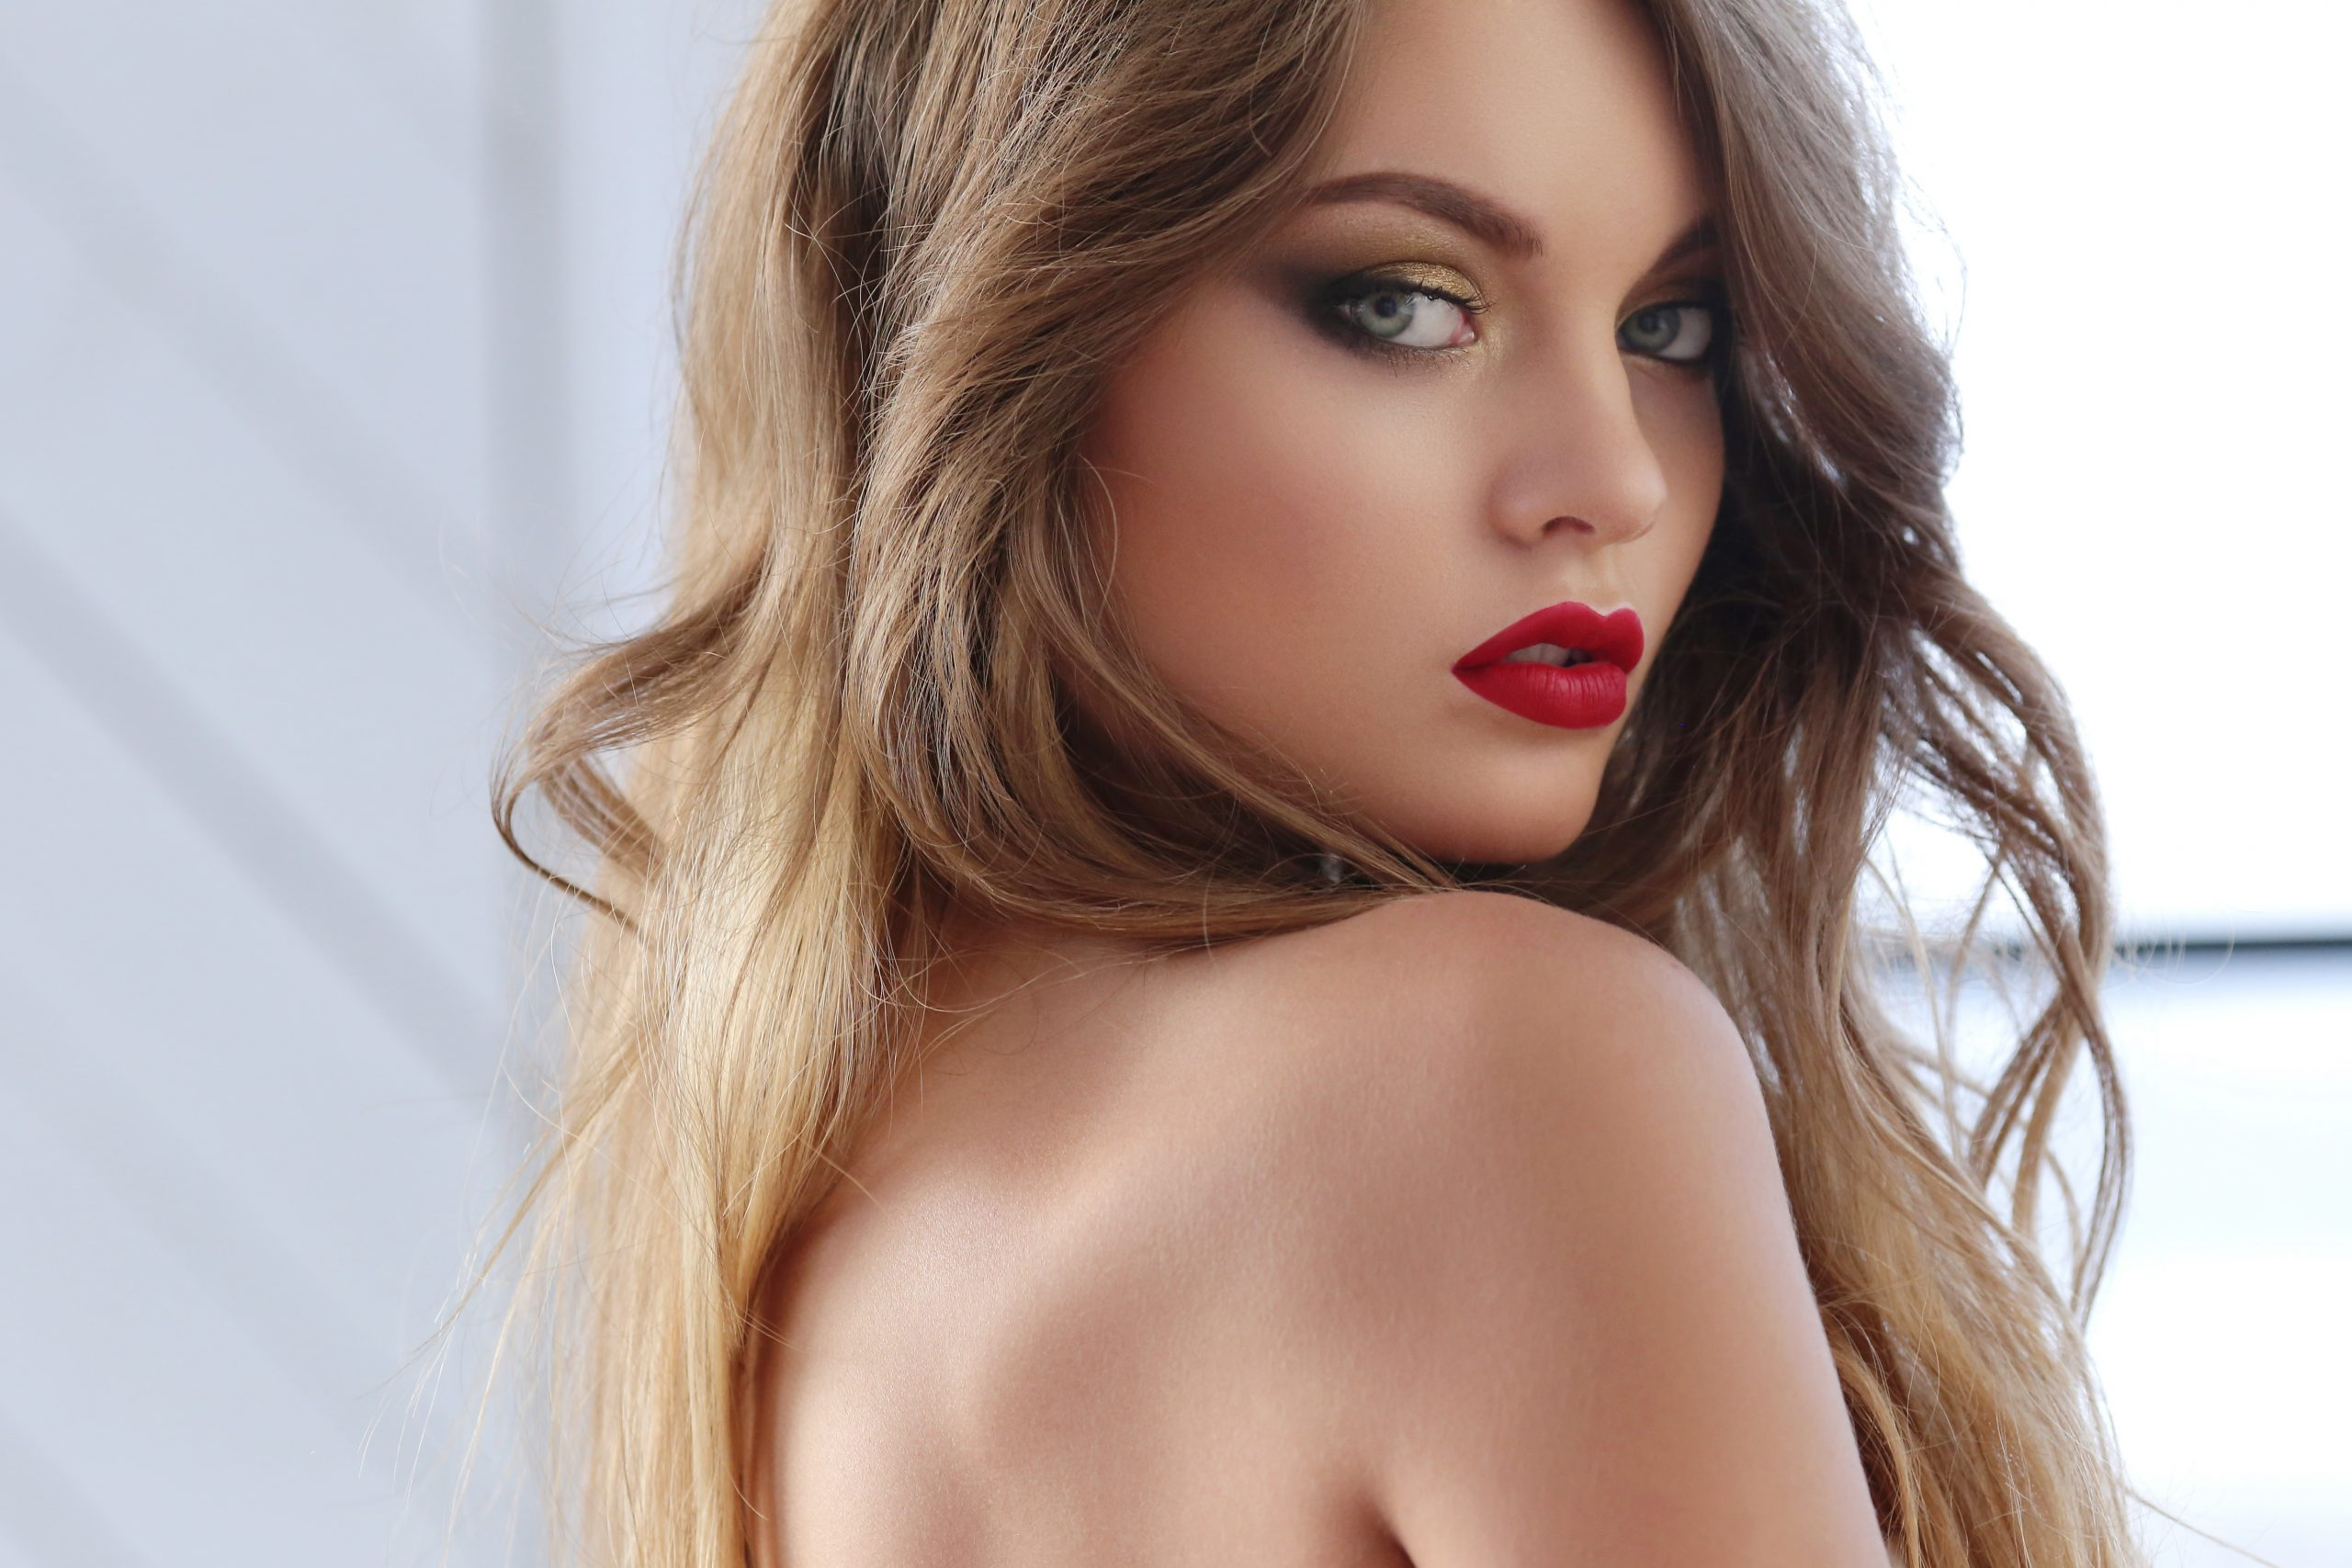 Ukrainian Beautiful woman with blonde hair and red lipstick